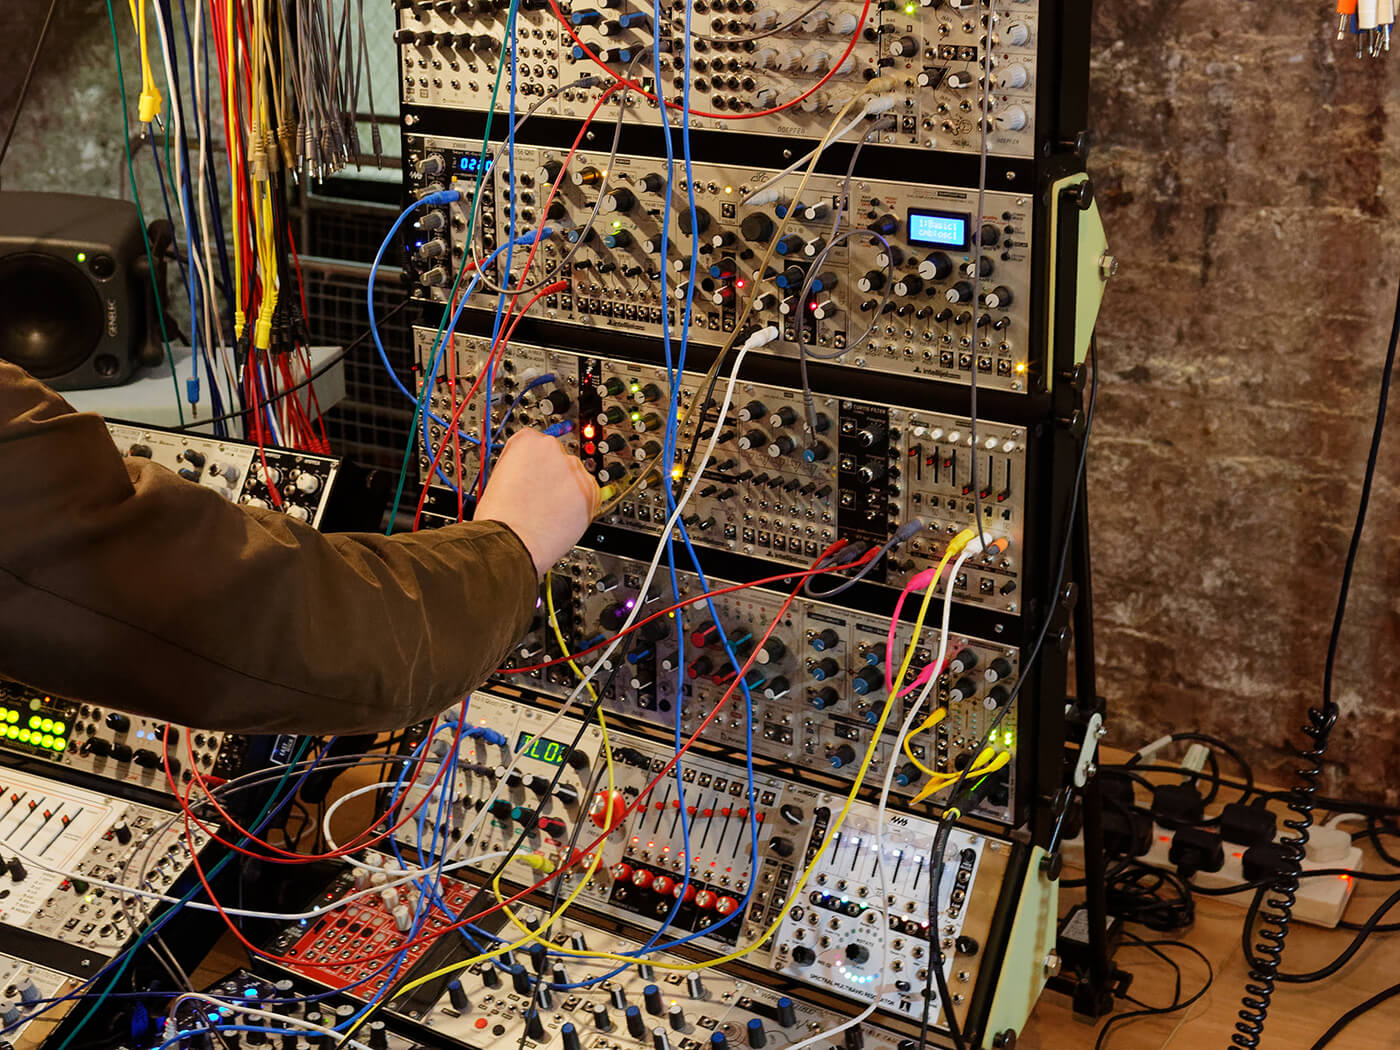 Live performance buyer's guide modular